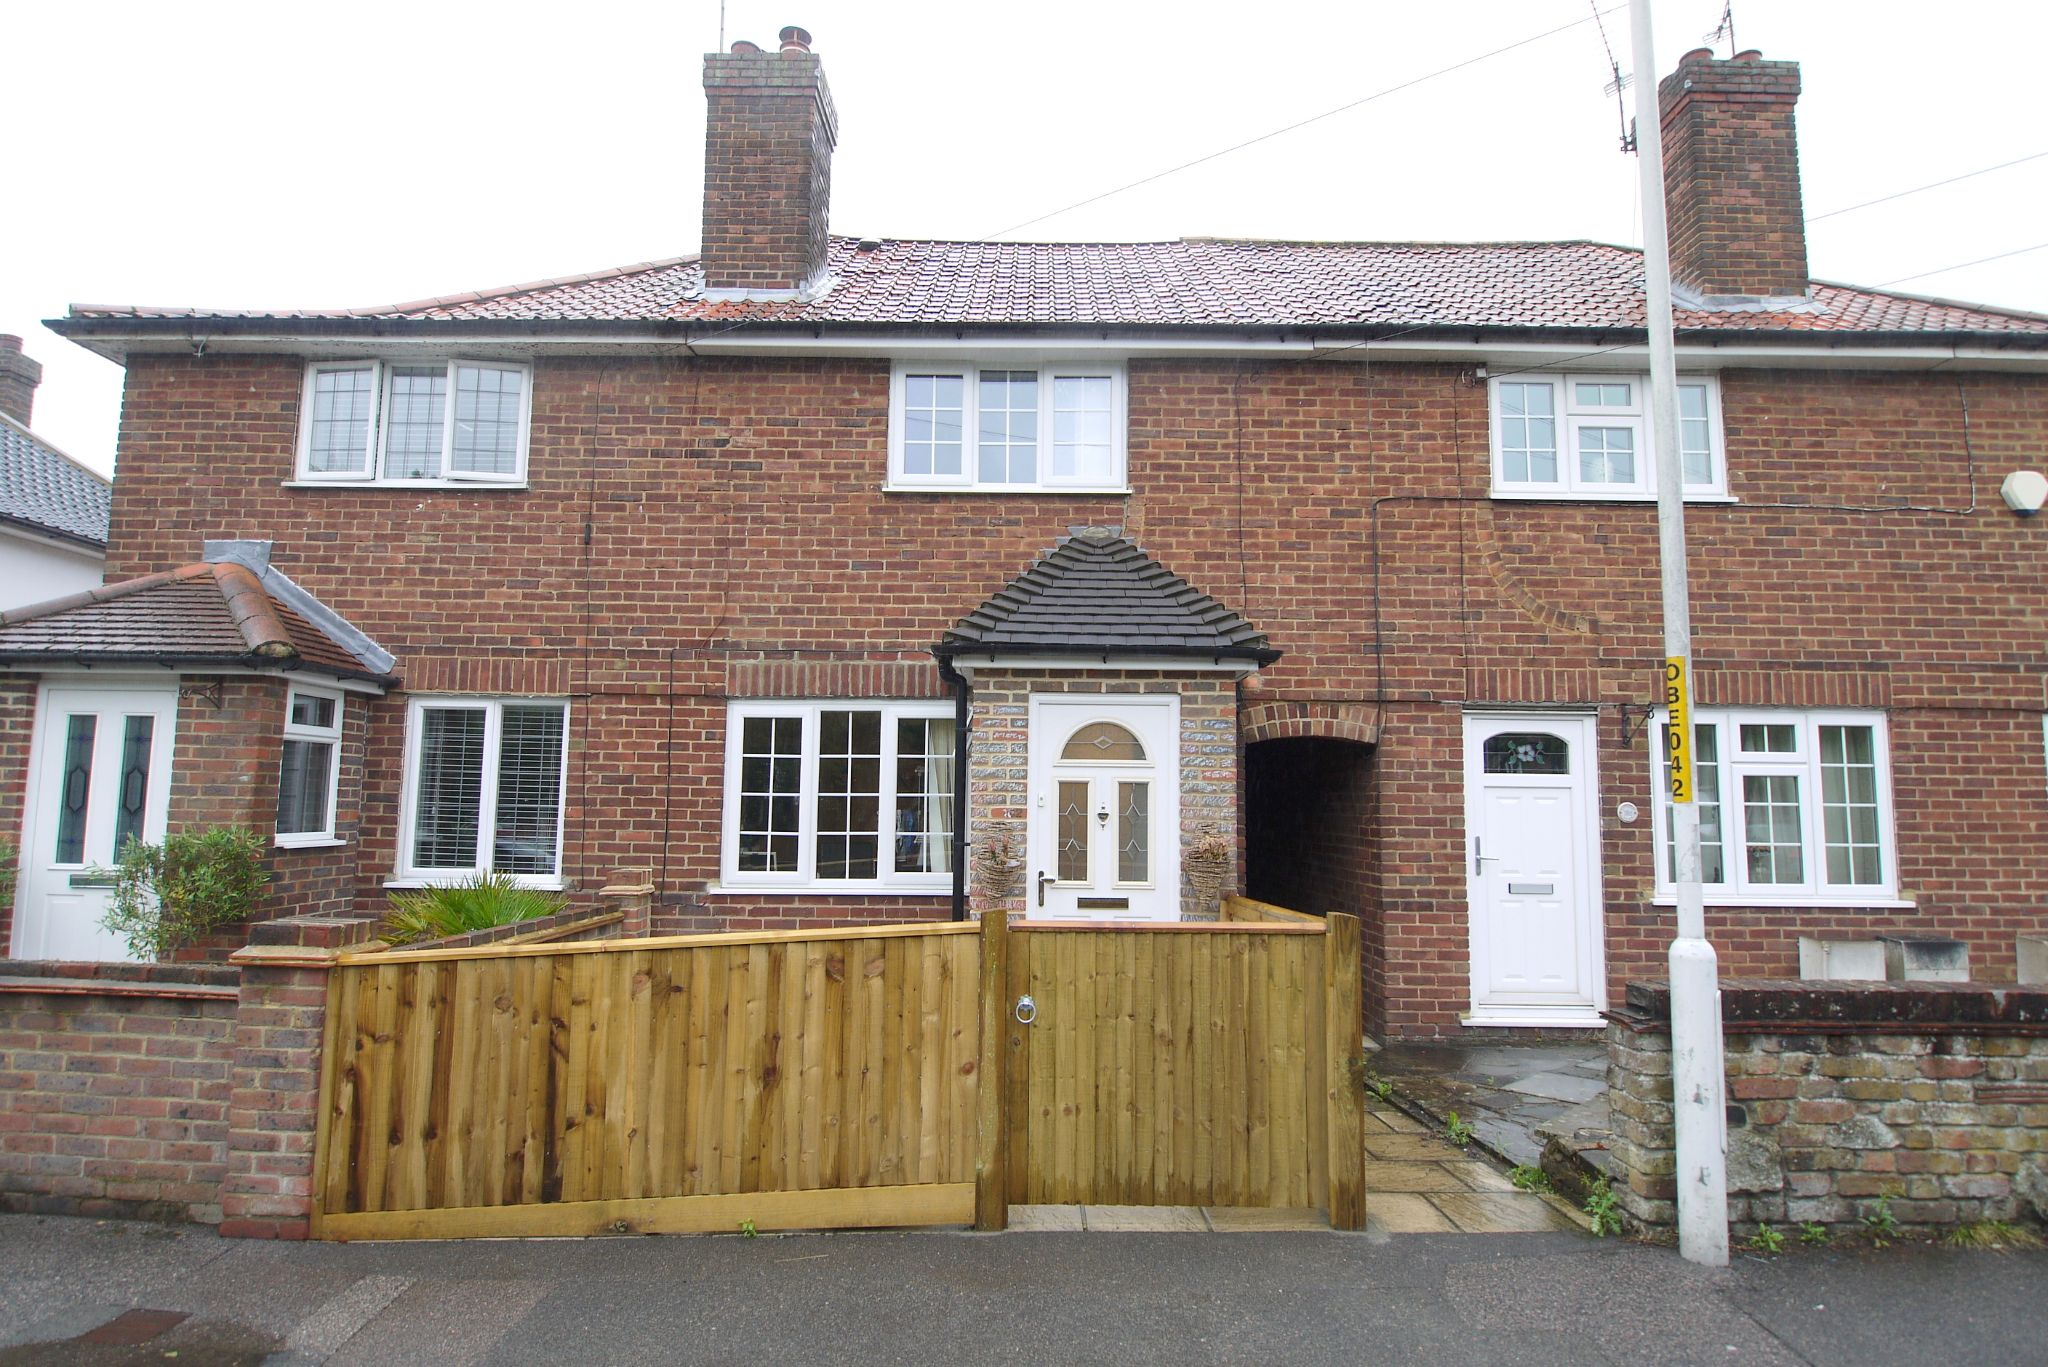 3 bedroom mid terraced house Sale Agreed in Sevenoaks - Photograph 1